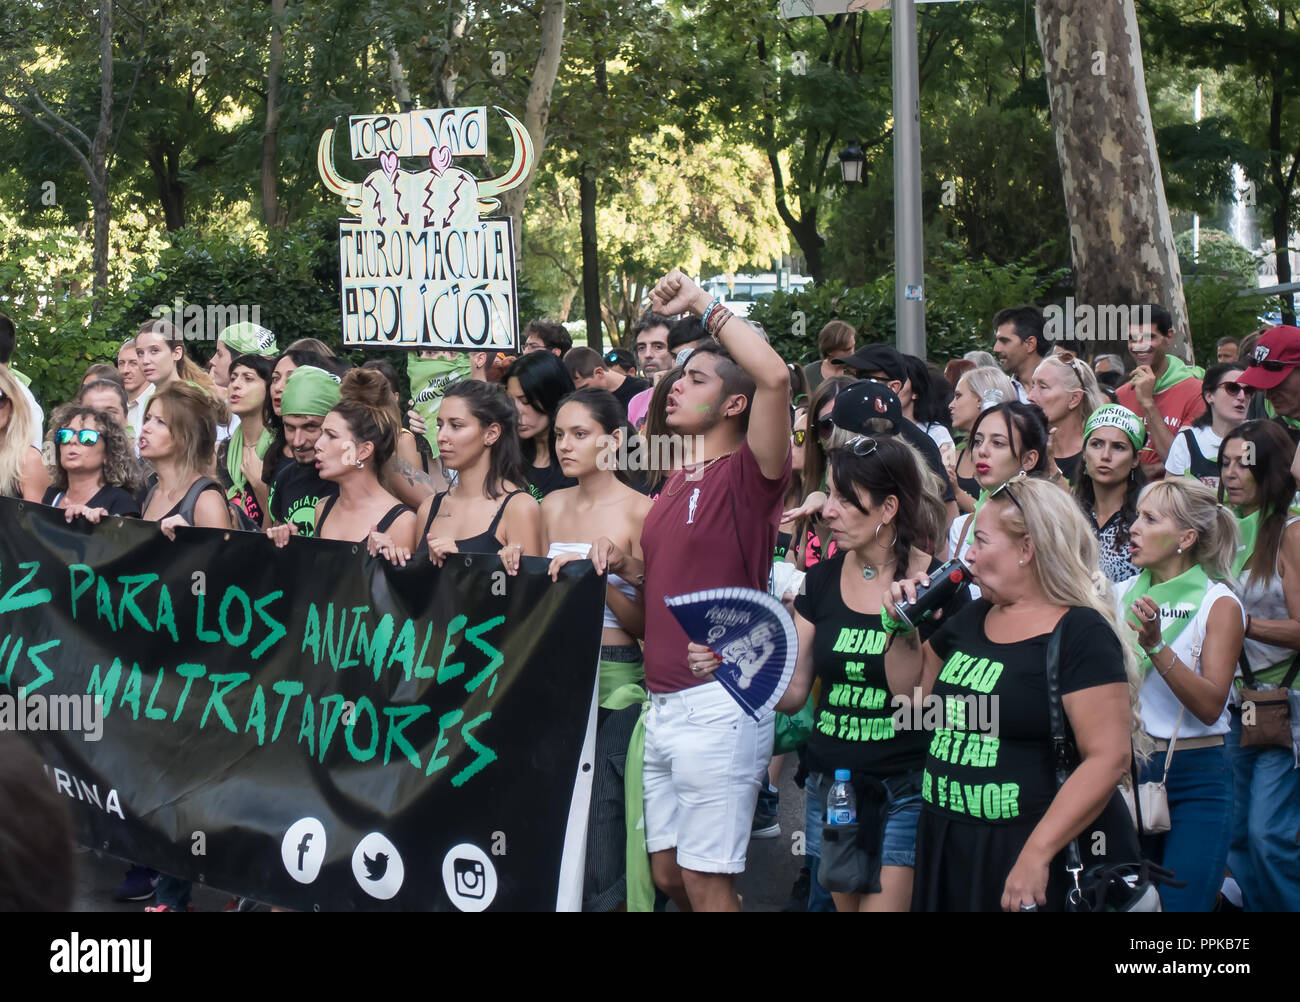 MADRID, SEPT 15, 2018: Marchers protest the killing of bulls in bullfights, and other animal abuse, demanding bullfighting in Spain be abolished. Stock Photo